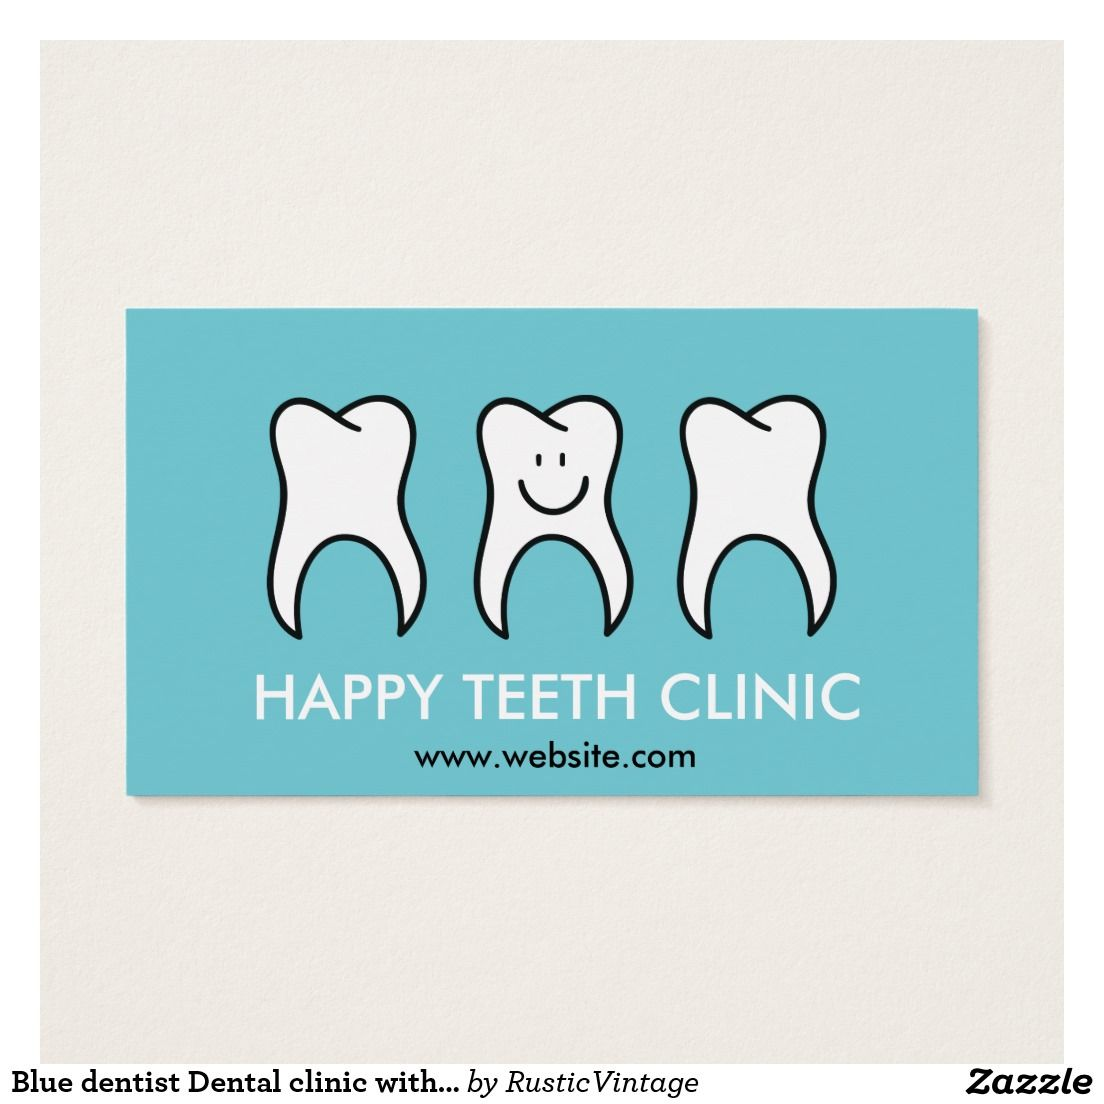 Blue dentist dental clinic with happy tooth mascot business card blue dentist dental clinic with happy tooth mascot business card reheart Image collections